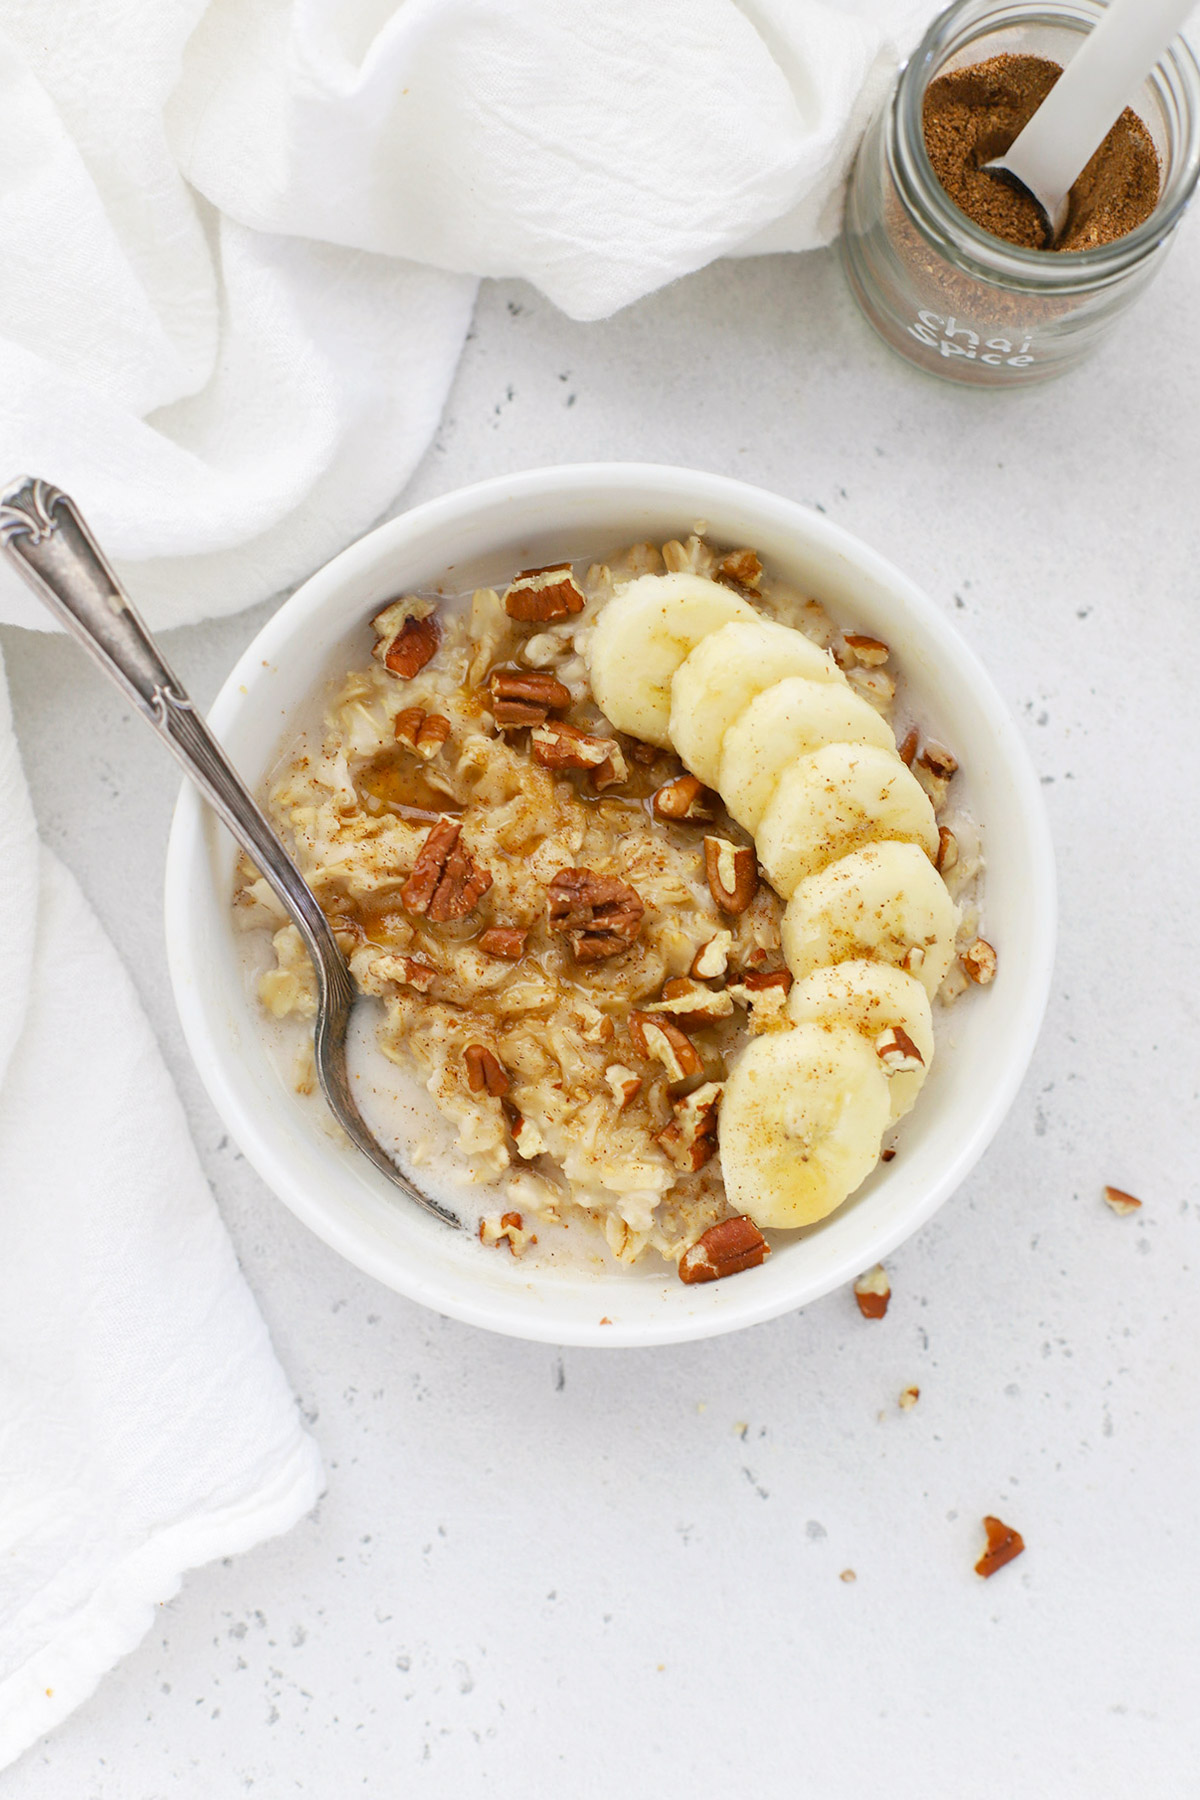 Overhead view of chai spice oatmeal with sliced bananas and toasted pecans